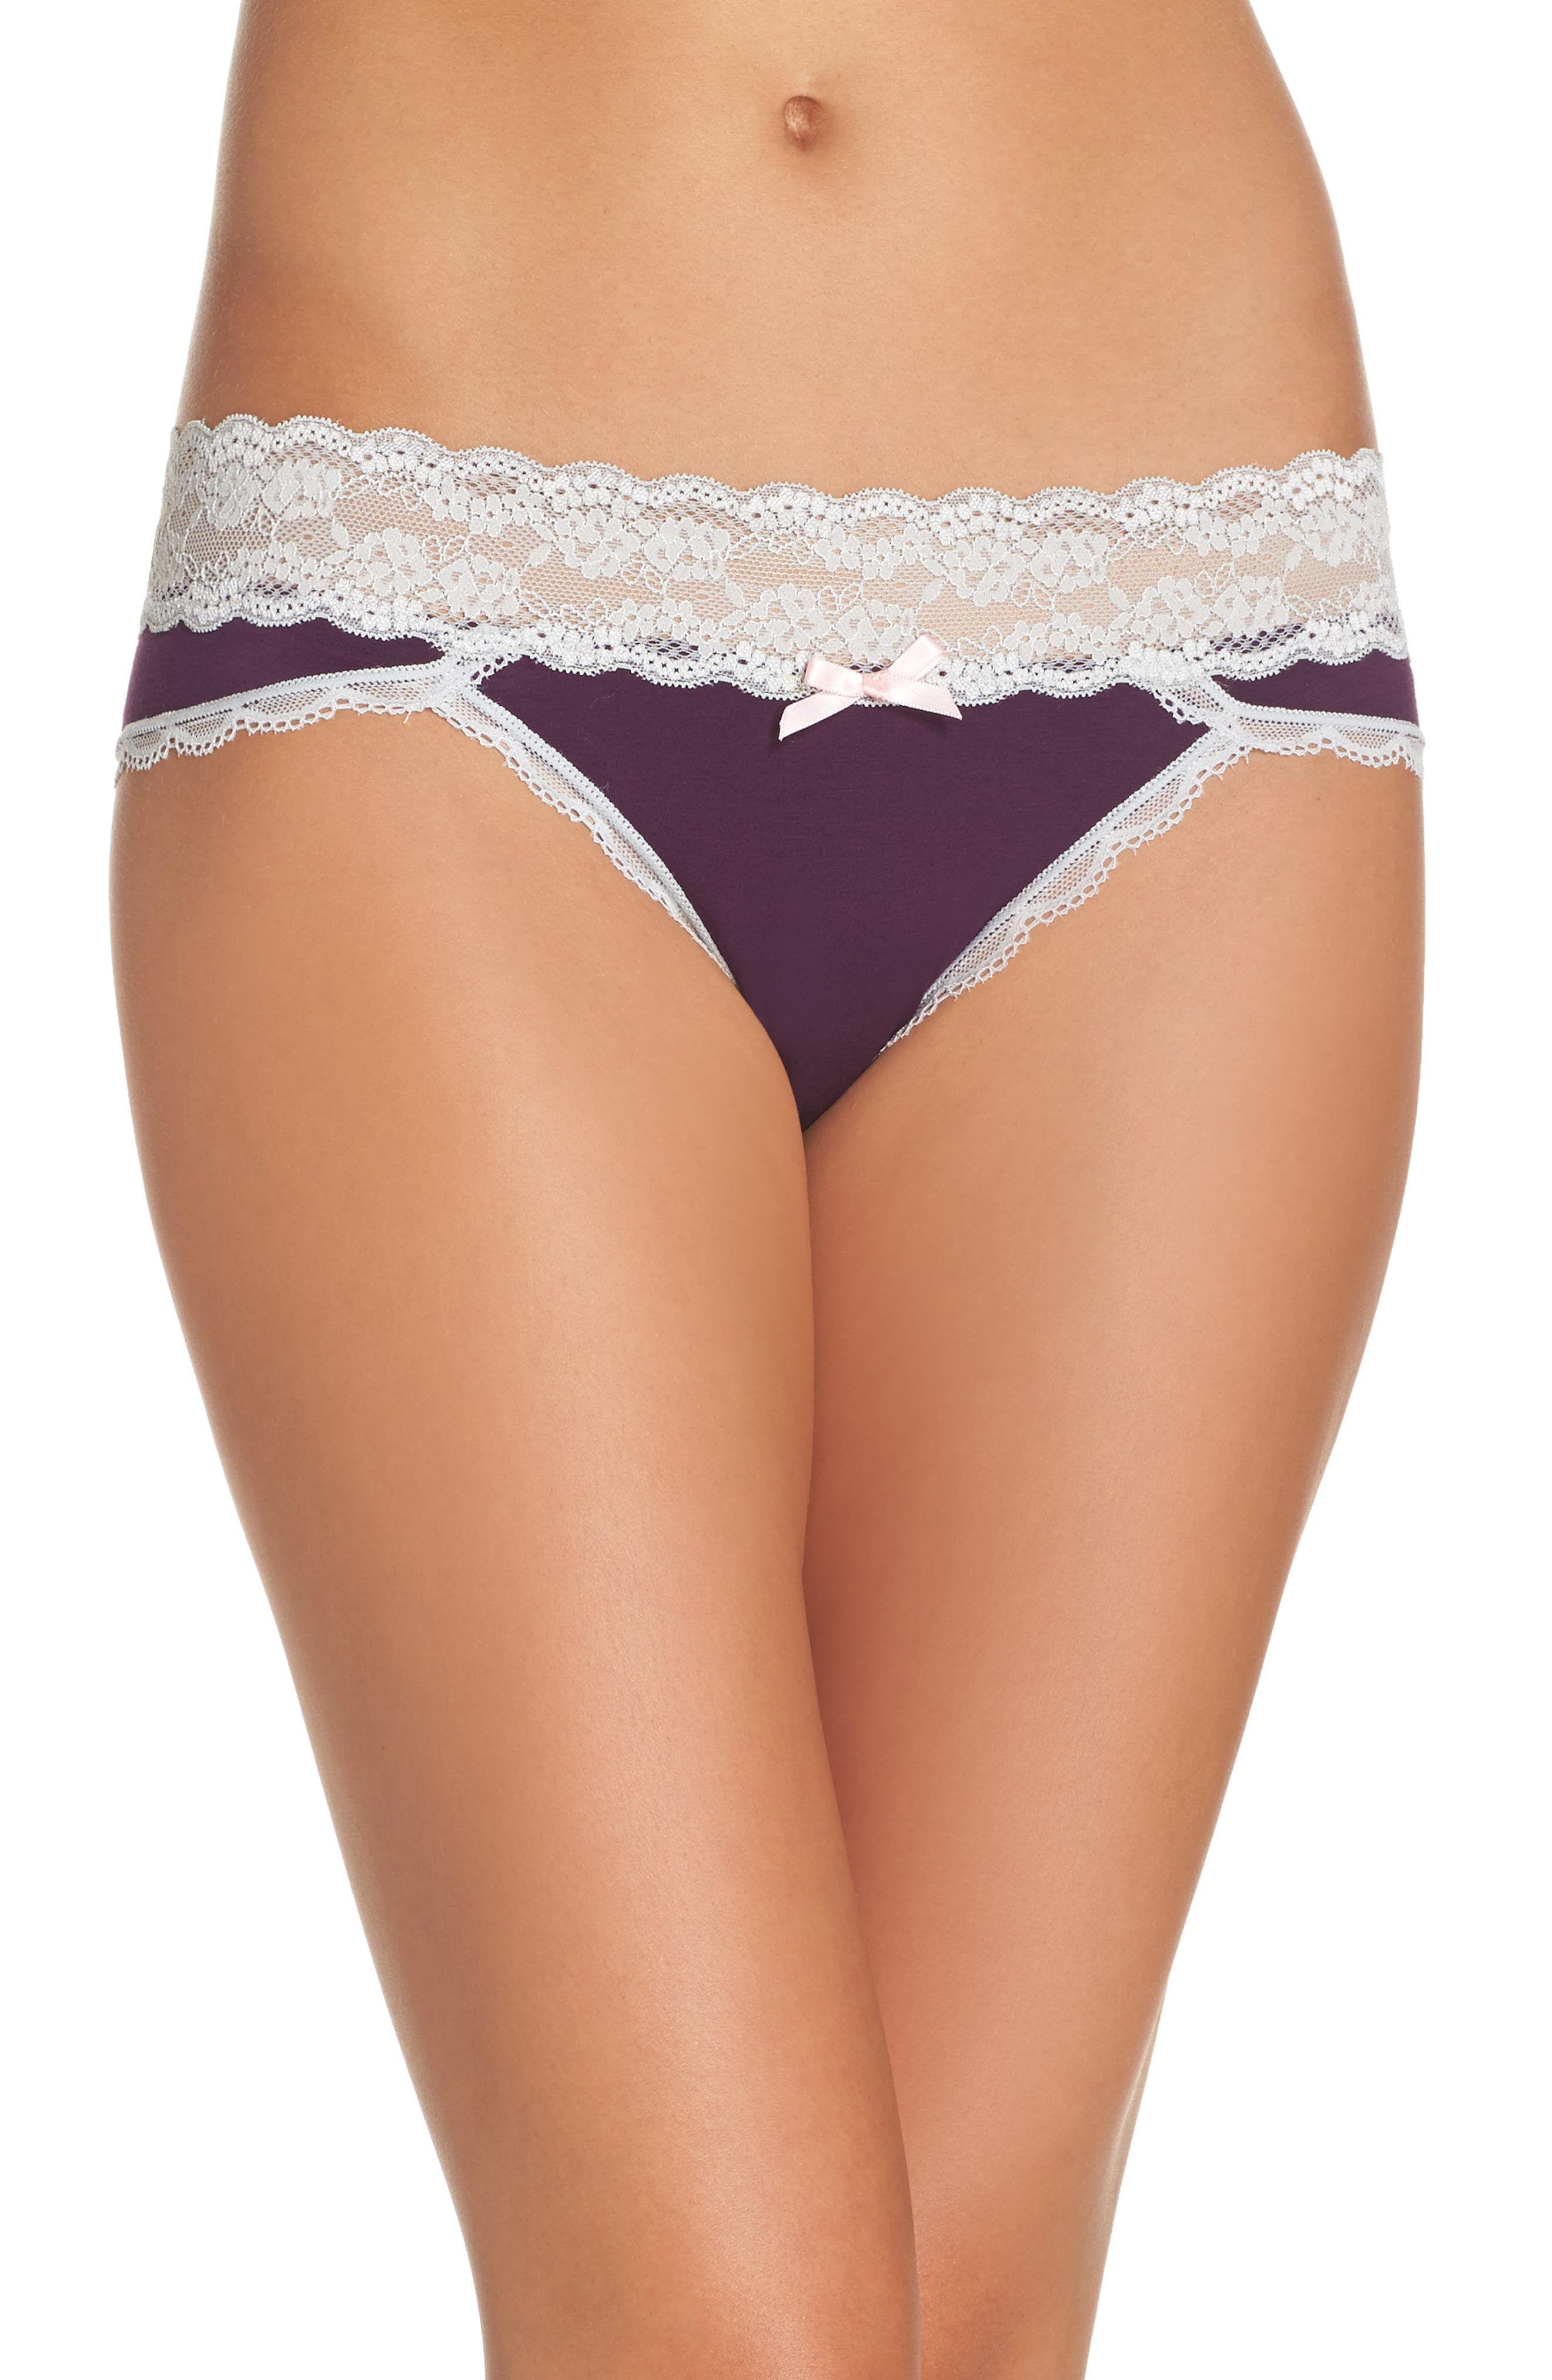 Alternate Image 1 Selected - Honeydew Intimates Lace Waistband Hipster Panties (3 for $33)